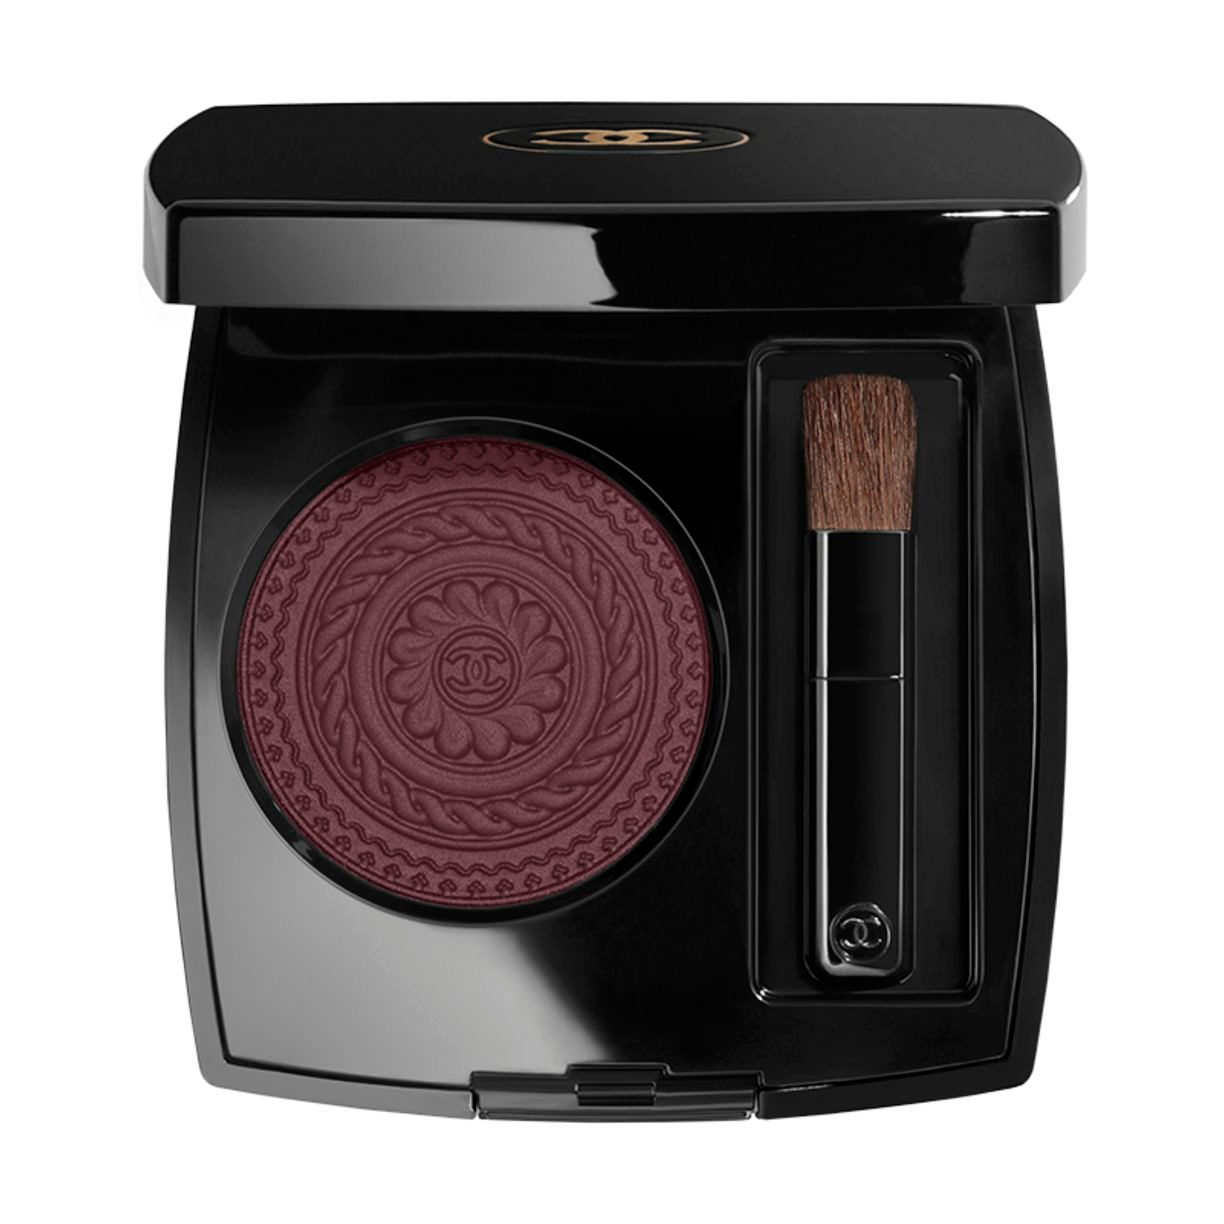 OMBRE PREMIÈRE EXCLUSIVE CREATION - LIMITED EDITION - CREAMY POWDER EYESHADOW 58 - POURPRE BRUN